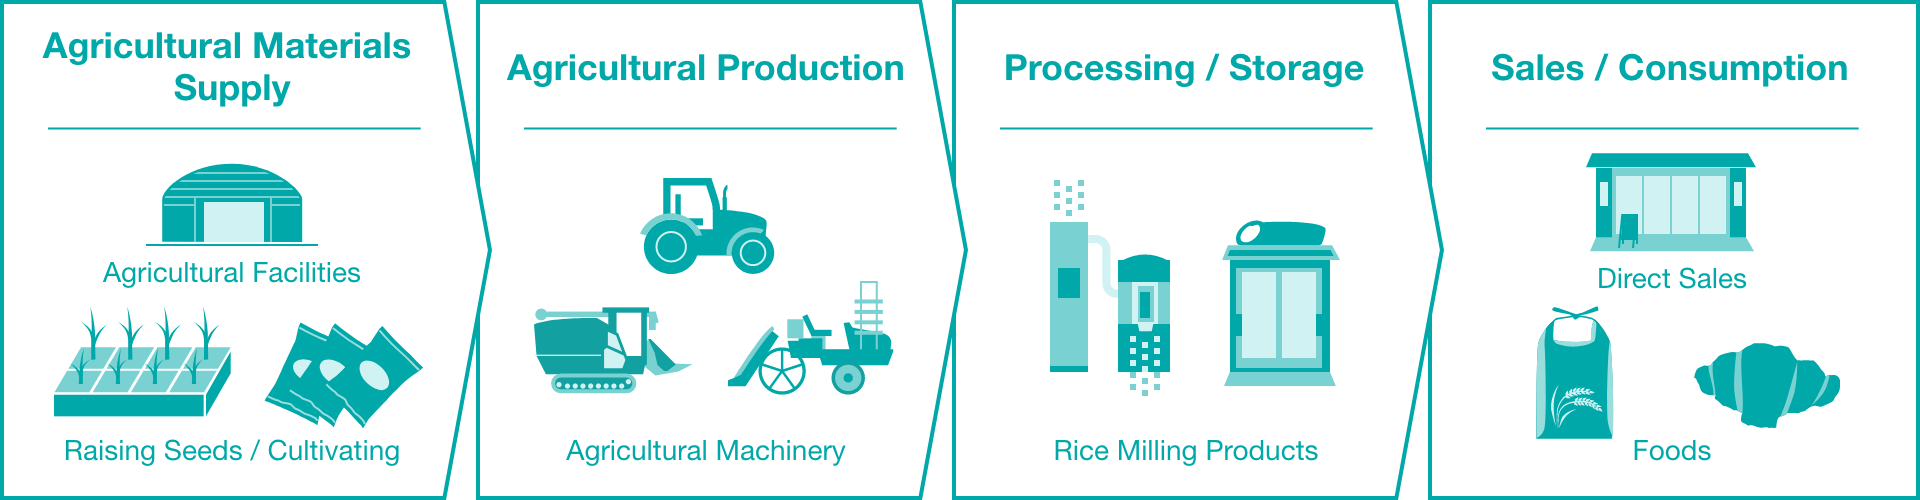 Agricultural Materials Supply - Agricultural Production - Processing / Storage - Sales / Consumption